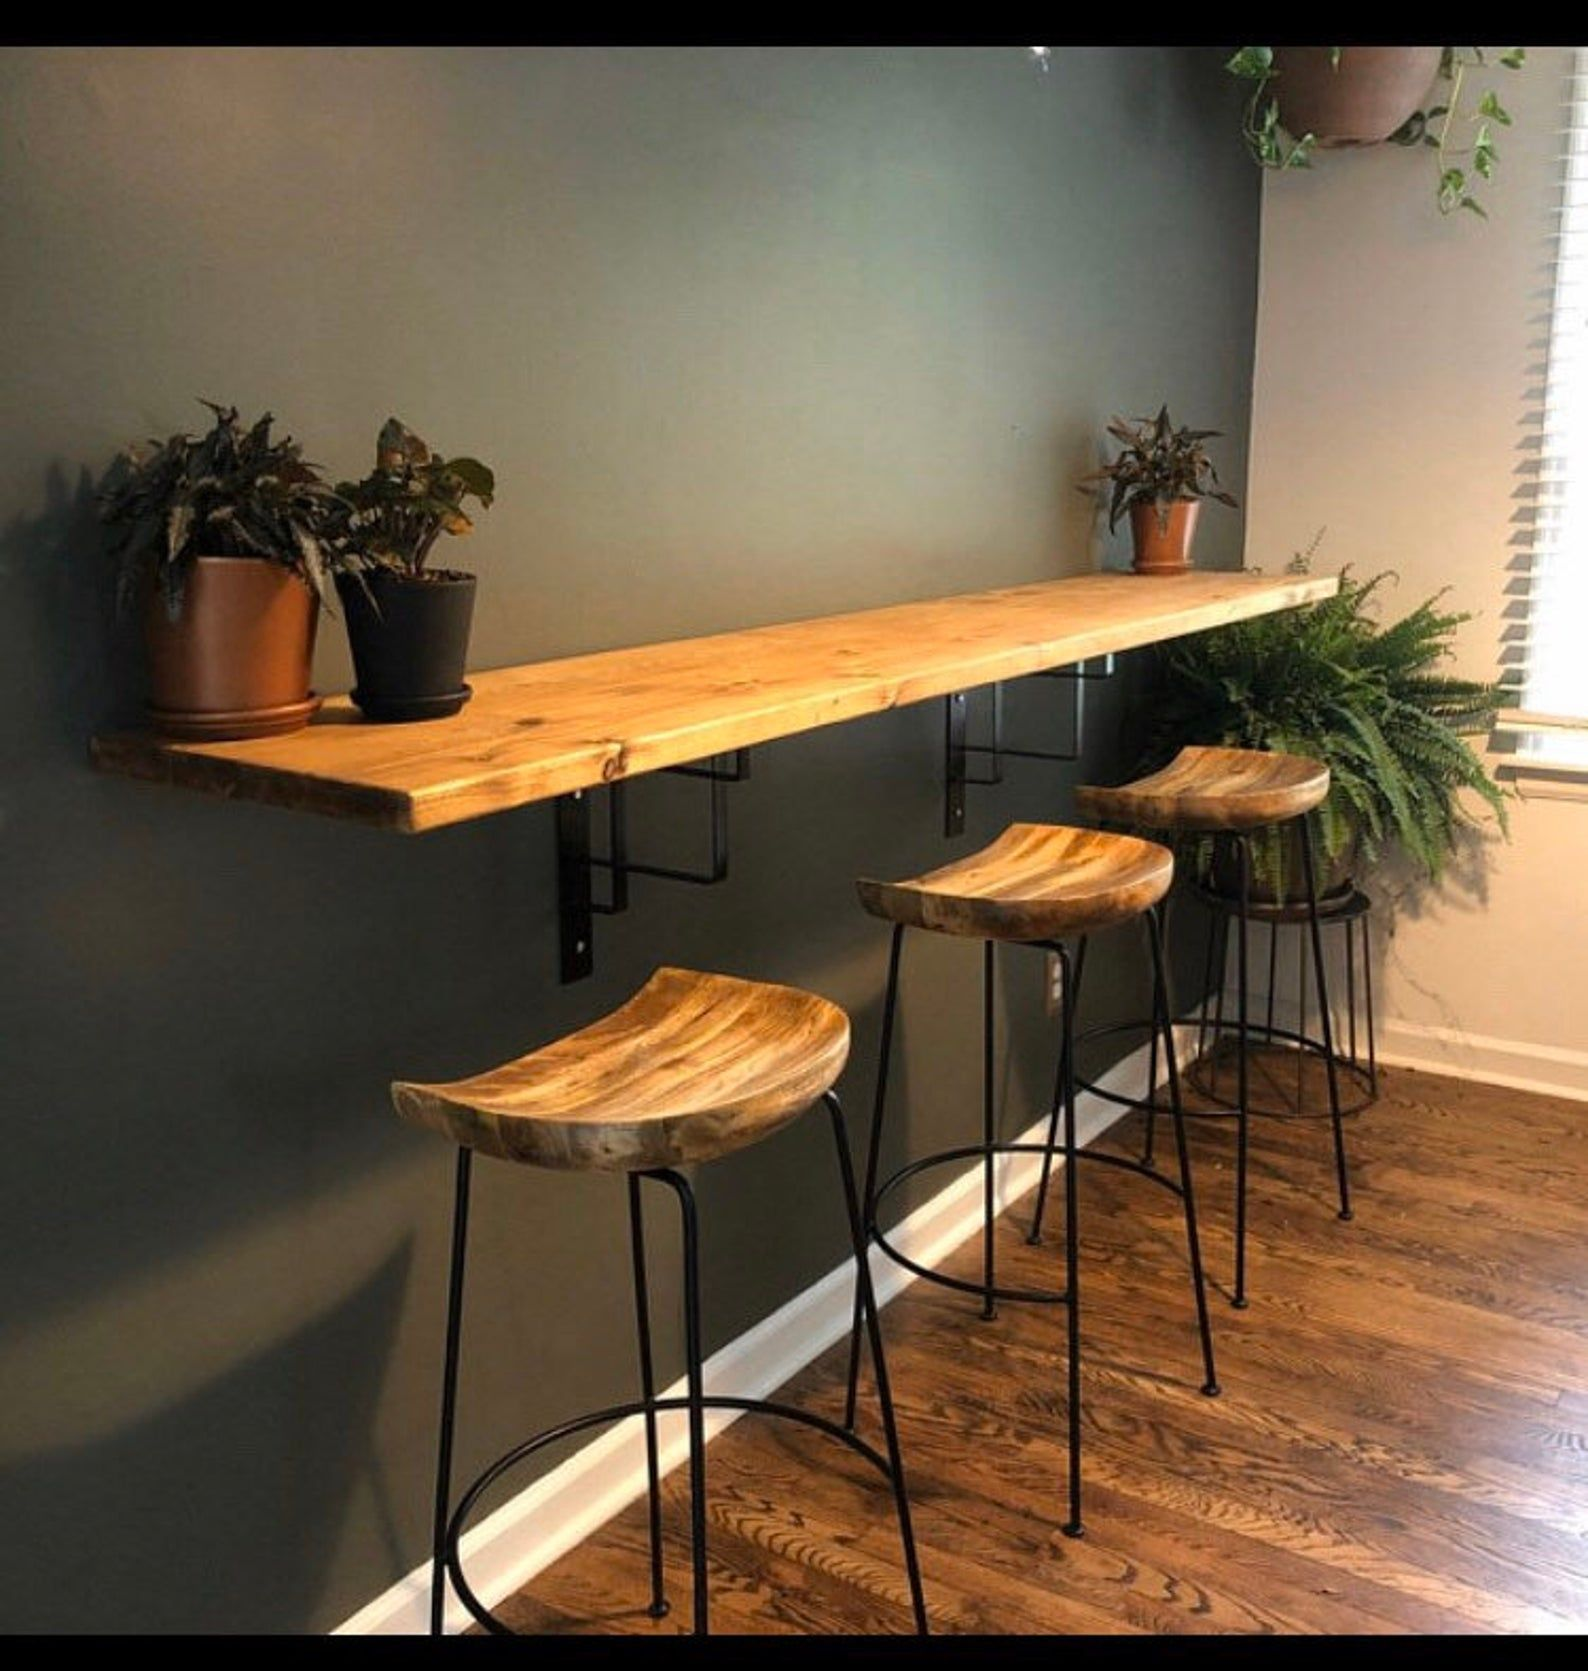 Wall Mounted Table Wall Hanging Workstation Modern Bracket Etsy Kitchen Bar Table Small Kitchen Tables Small Kitchen Bar Wall mounted kitchen bar table